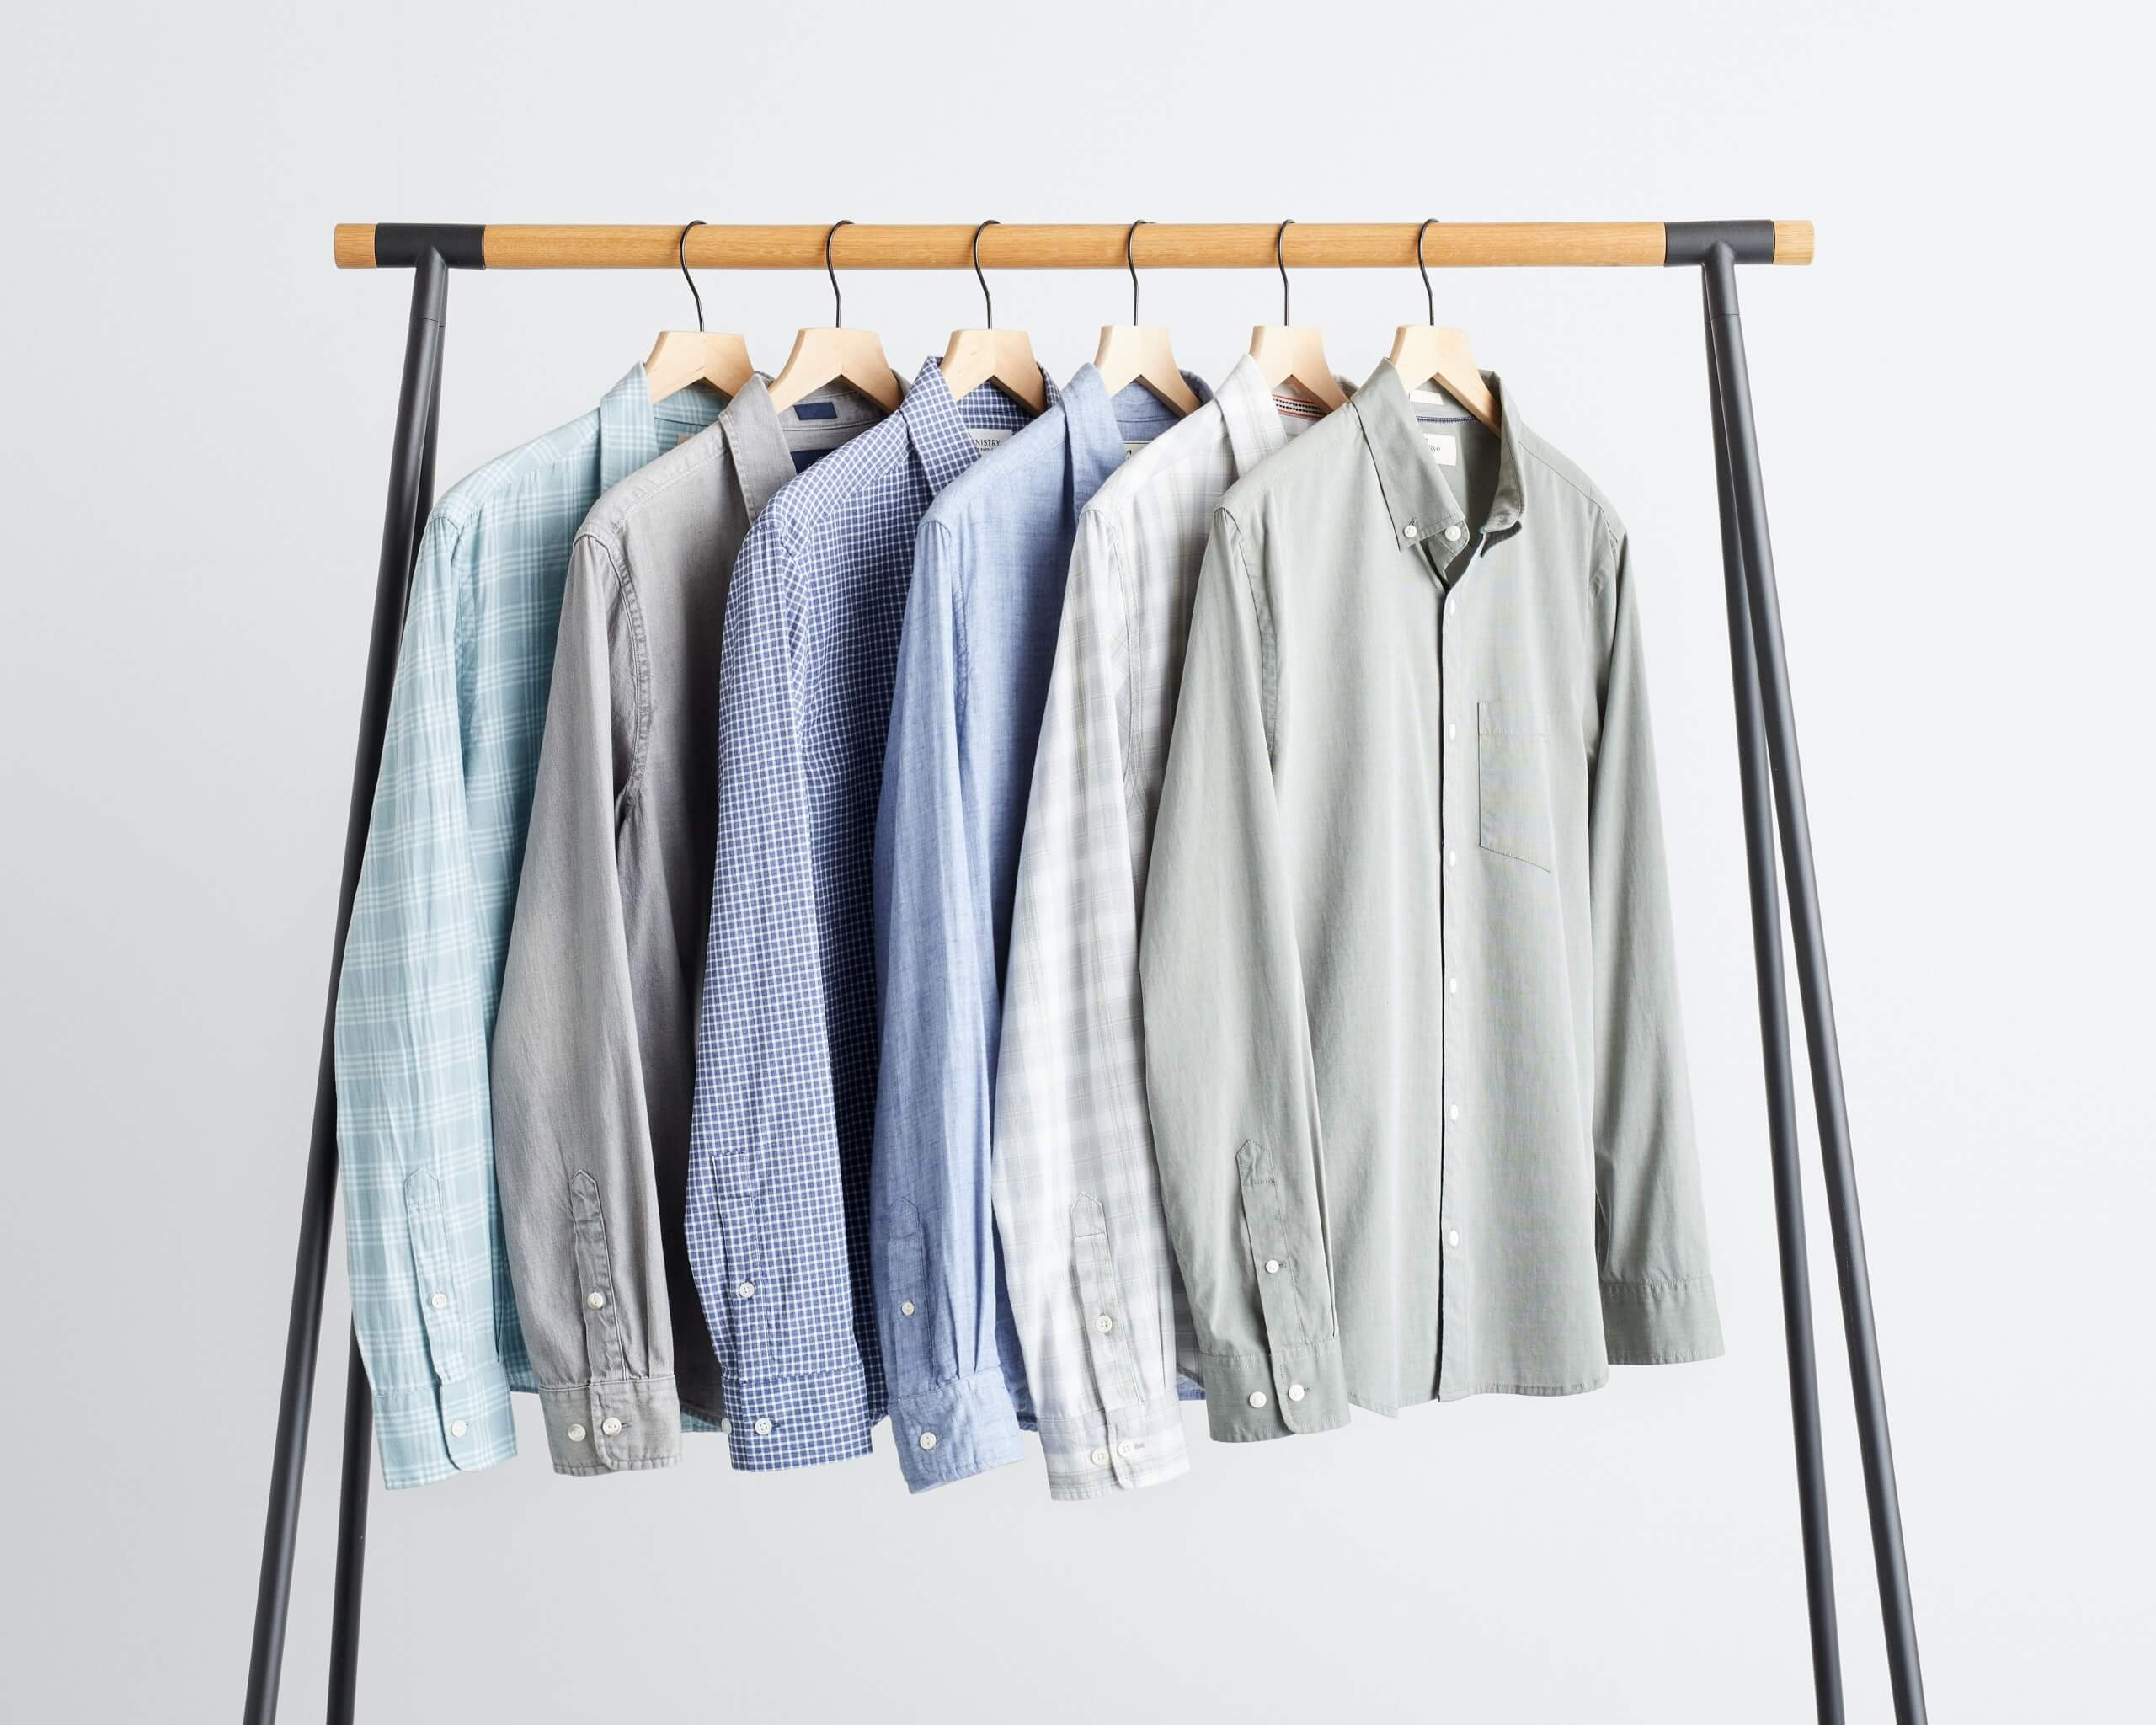 Stitch Fix Men's rack image with long sleeve button-down shirts in various shades of blue and grey.